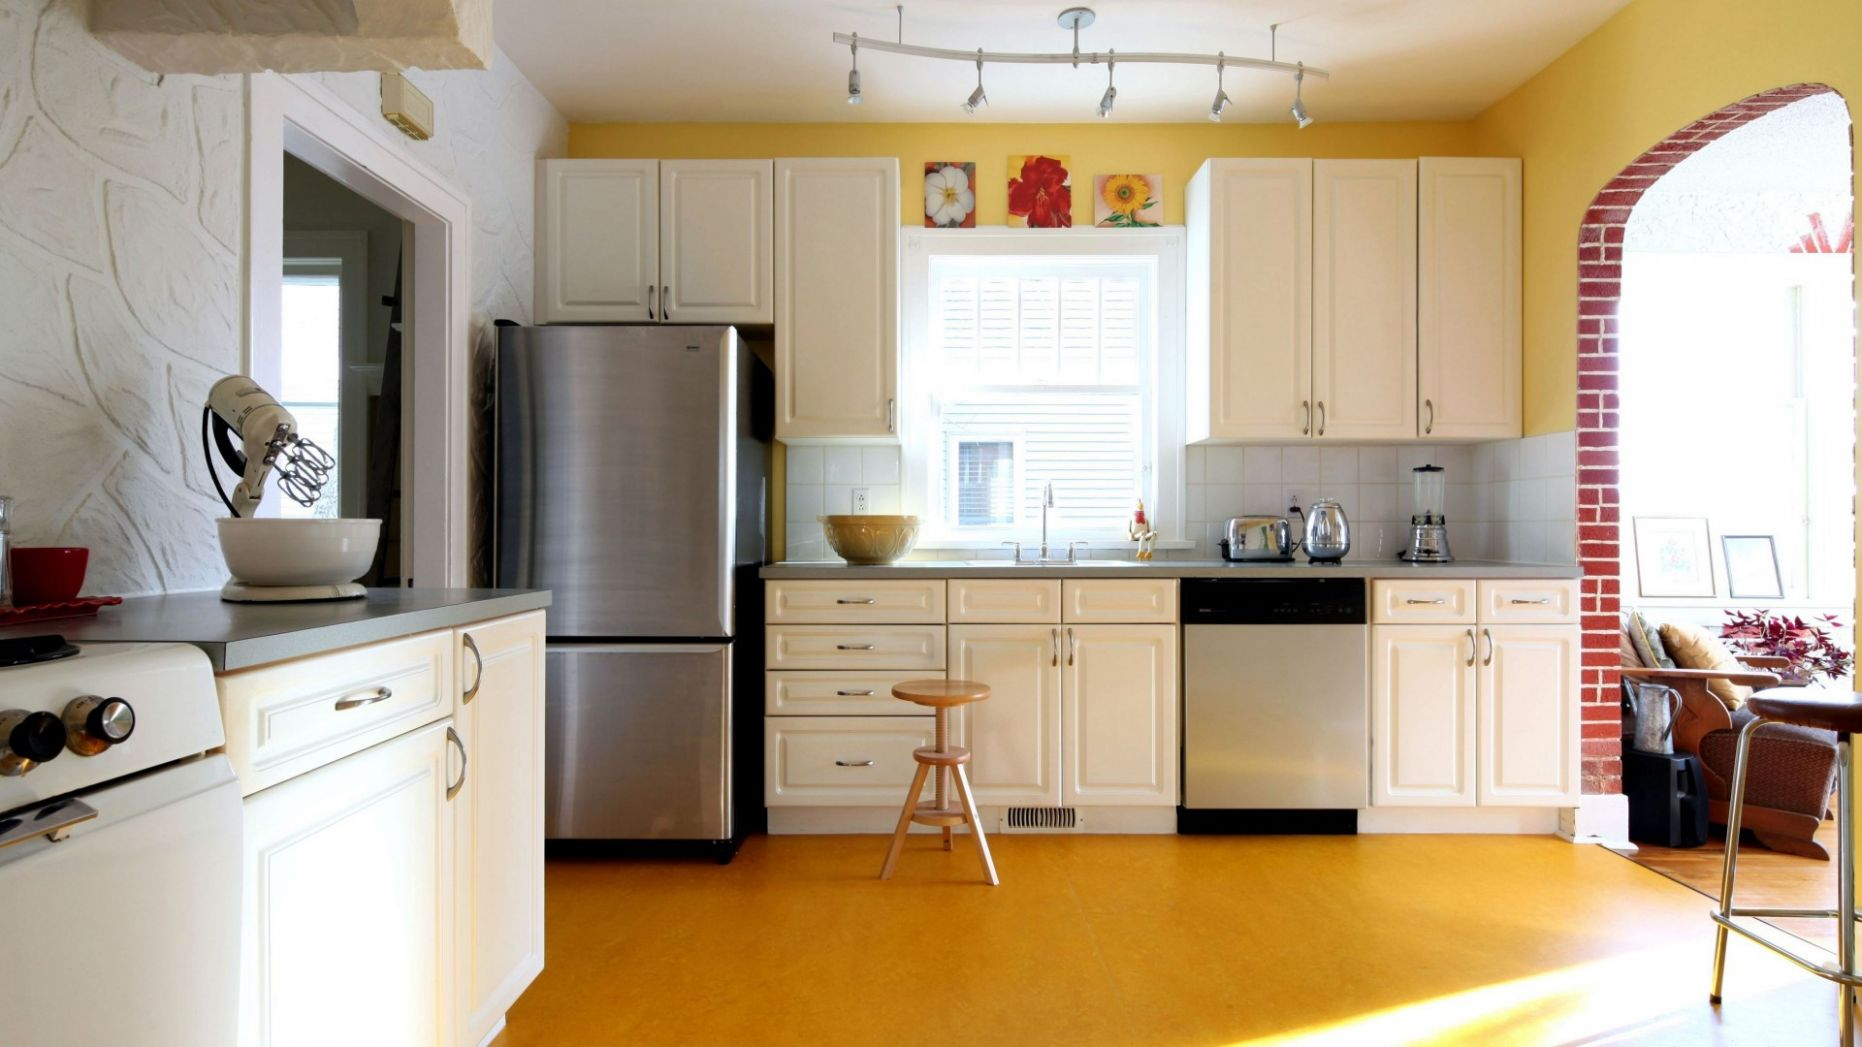 10 Simple Kitchen Ideas for a Beautiful Minimalist Home